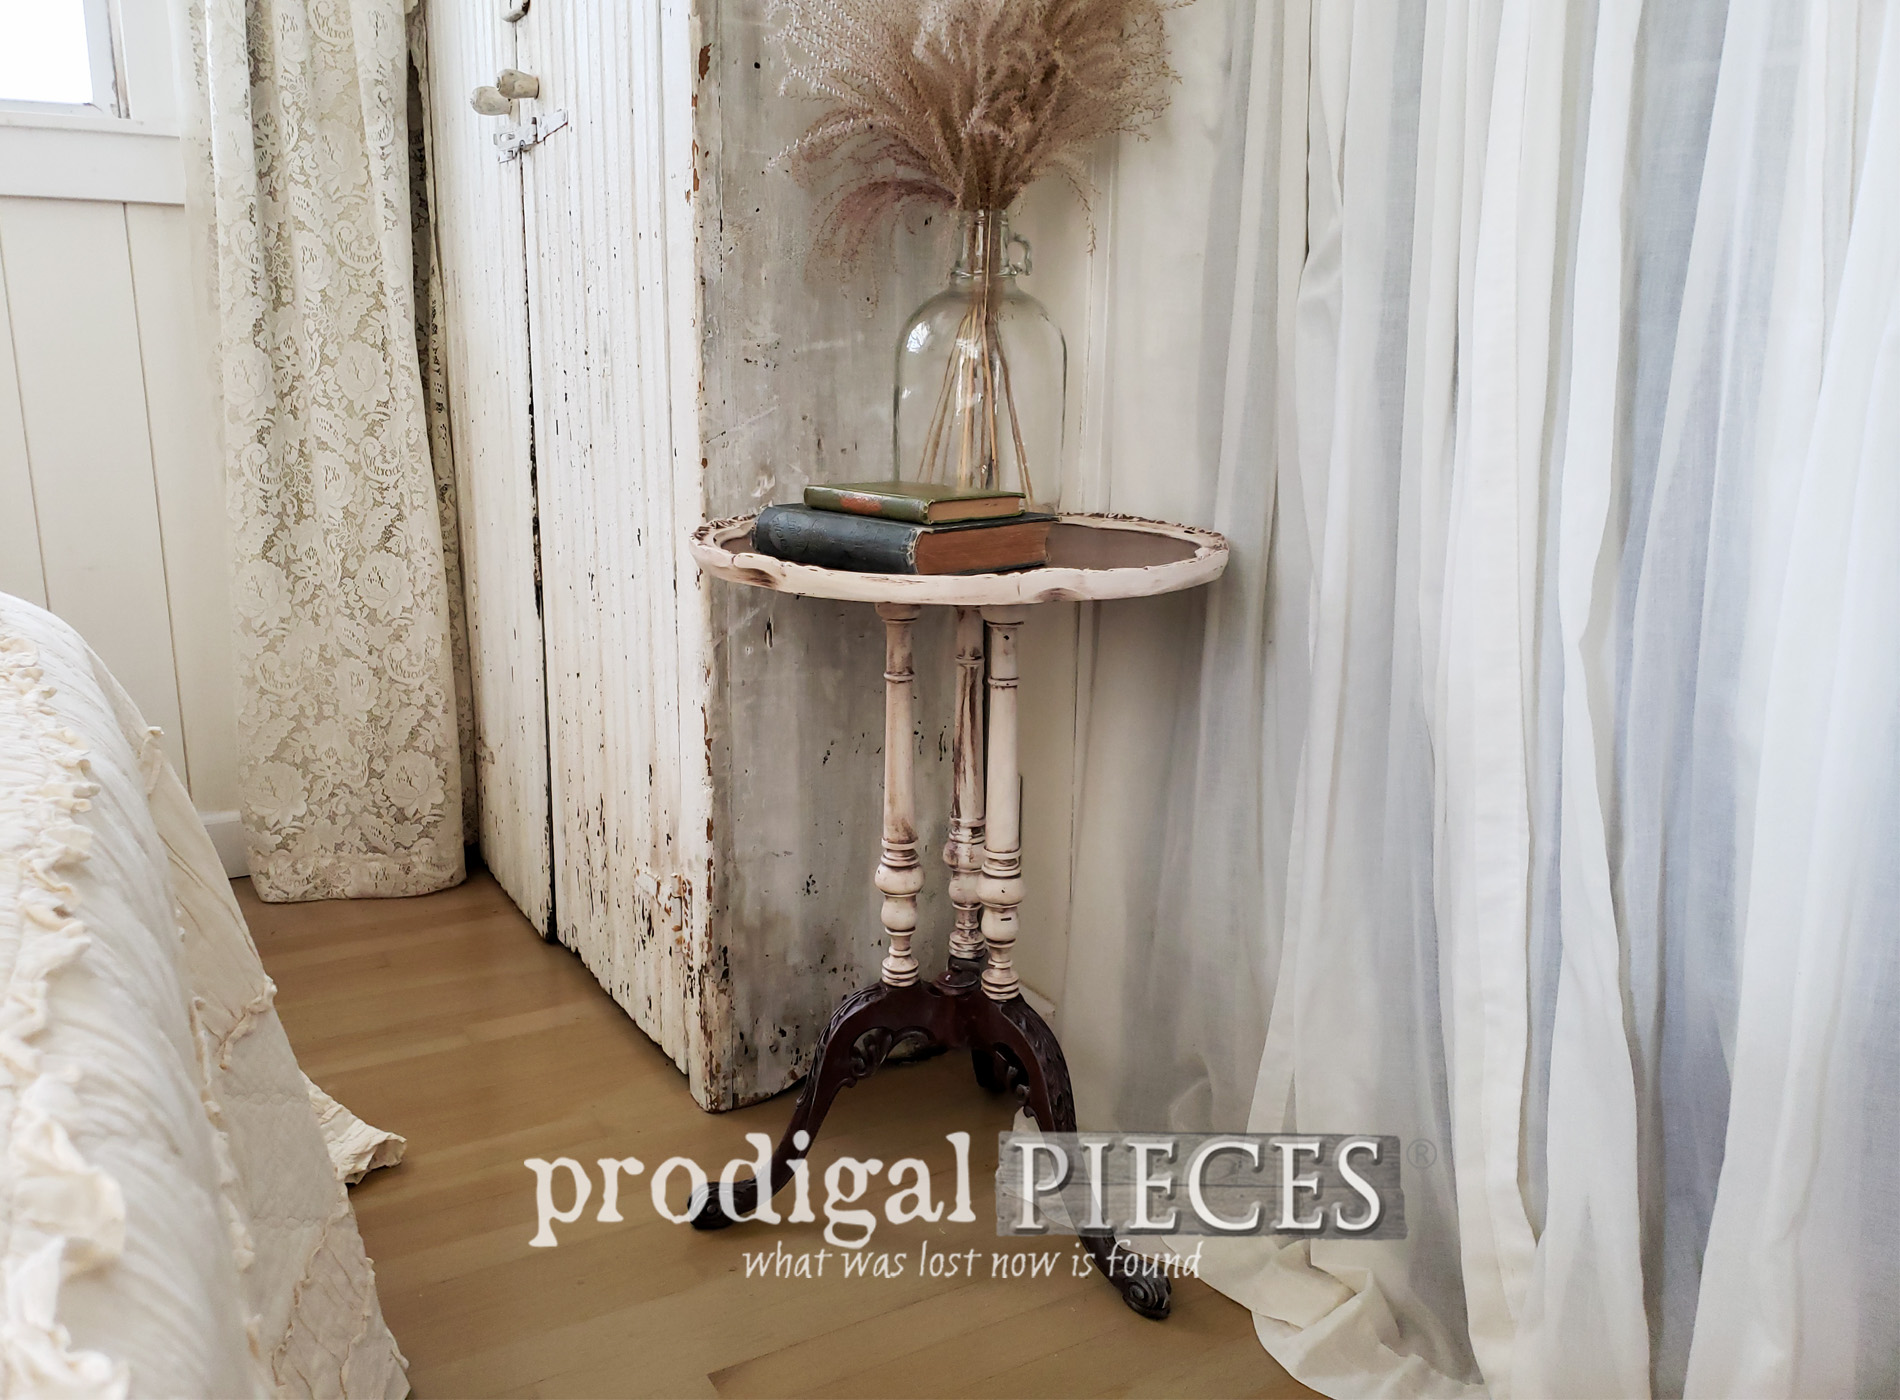 Featured Antique Pie Crust Table Rescued from the Curb and Restored to a New Glory | by Larissa of Prodigal Pieces | prodigalpieces.com #prodigalpieces #diy #furniture #home #homedecor #farmhouse